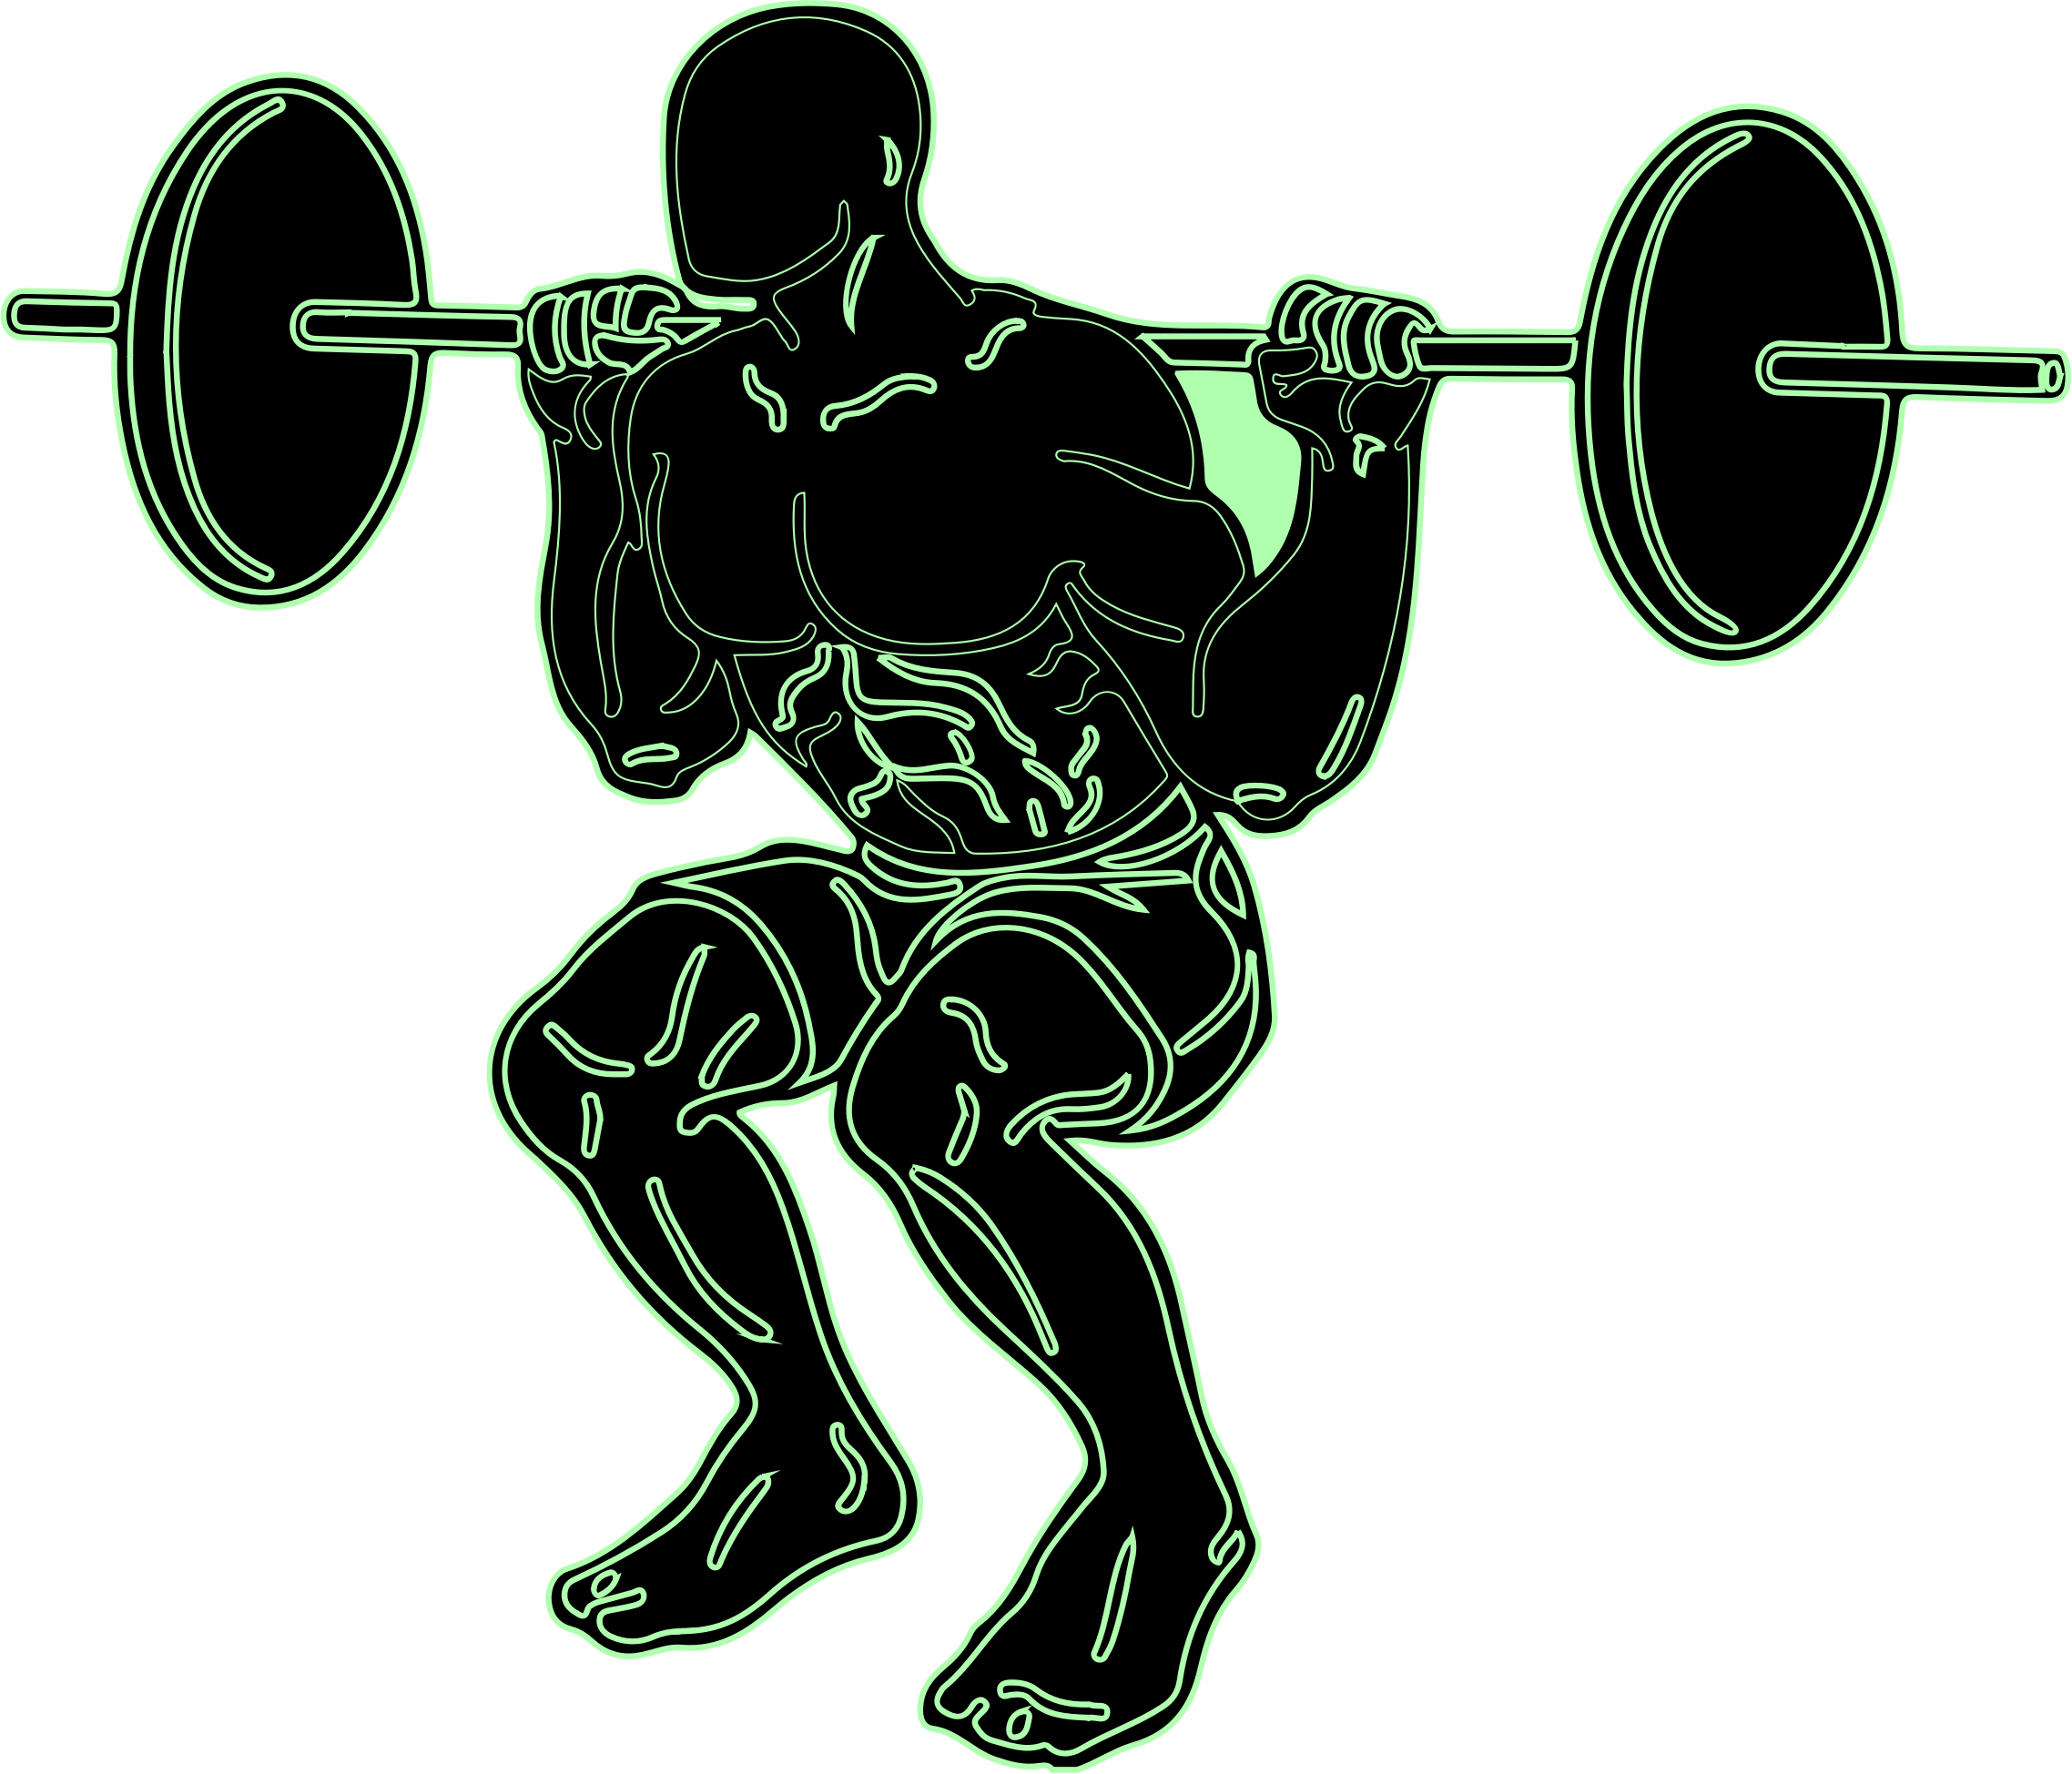 weight lifting silhouette clip art at getdrawings com free for rh getdrawings com powerlifting clipart free